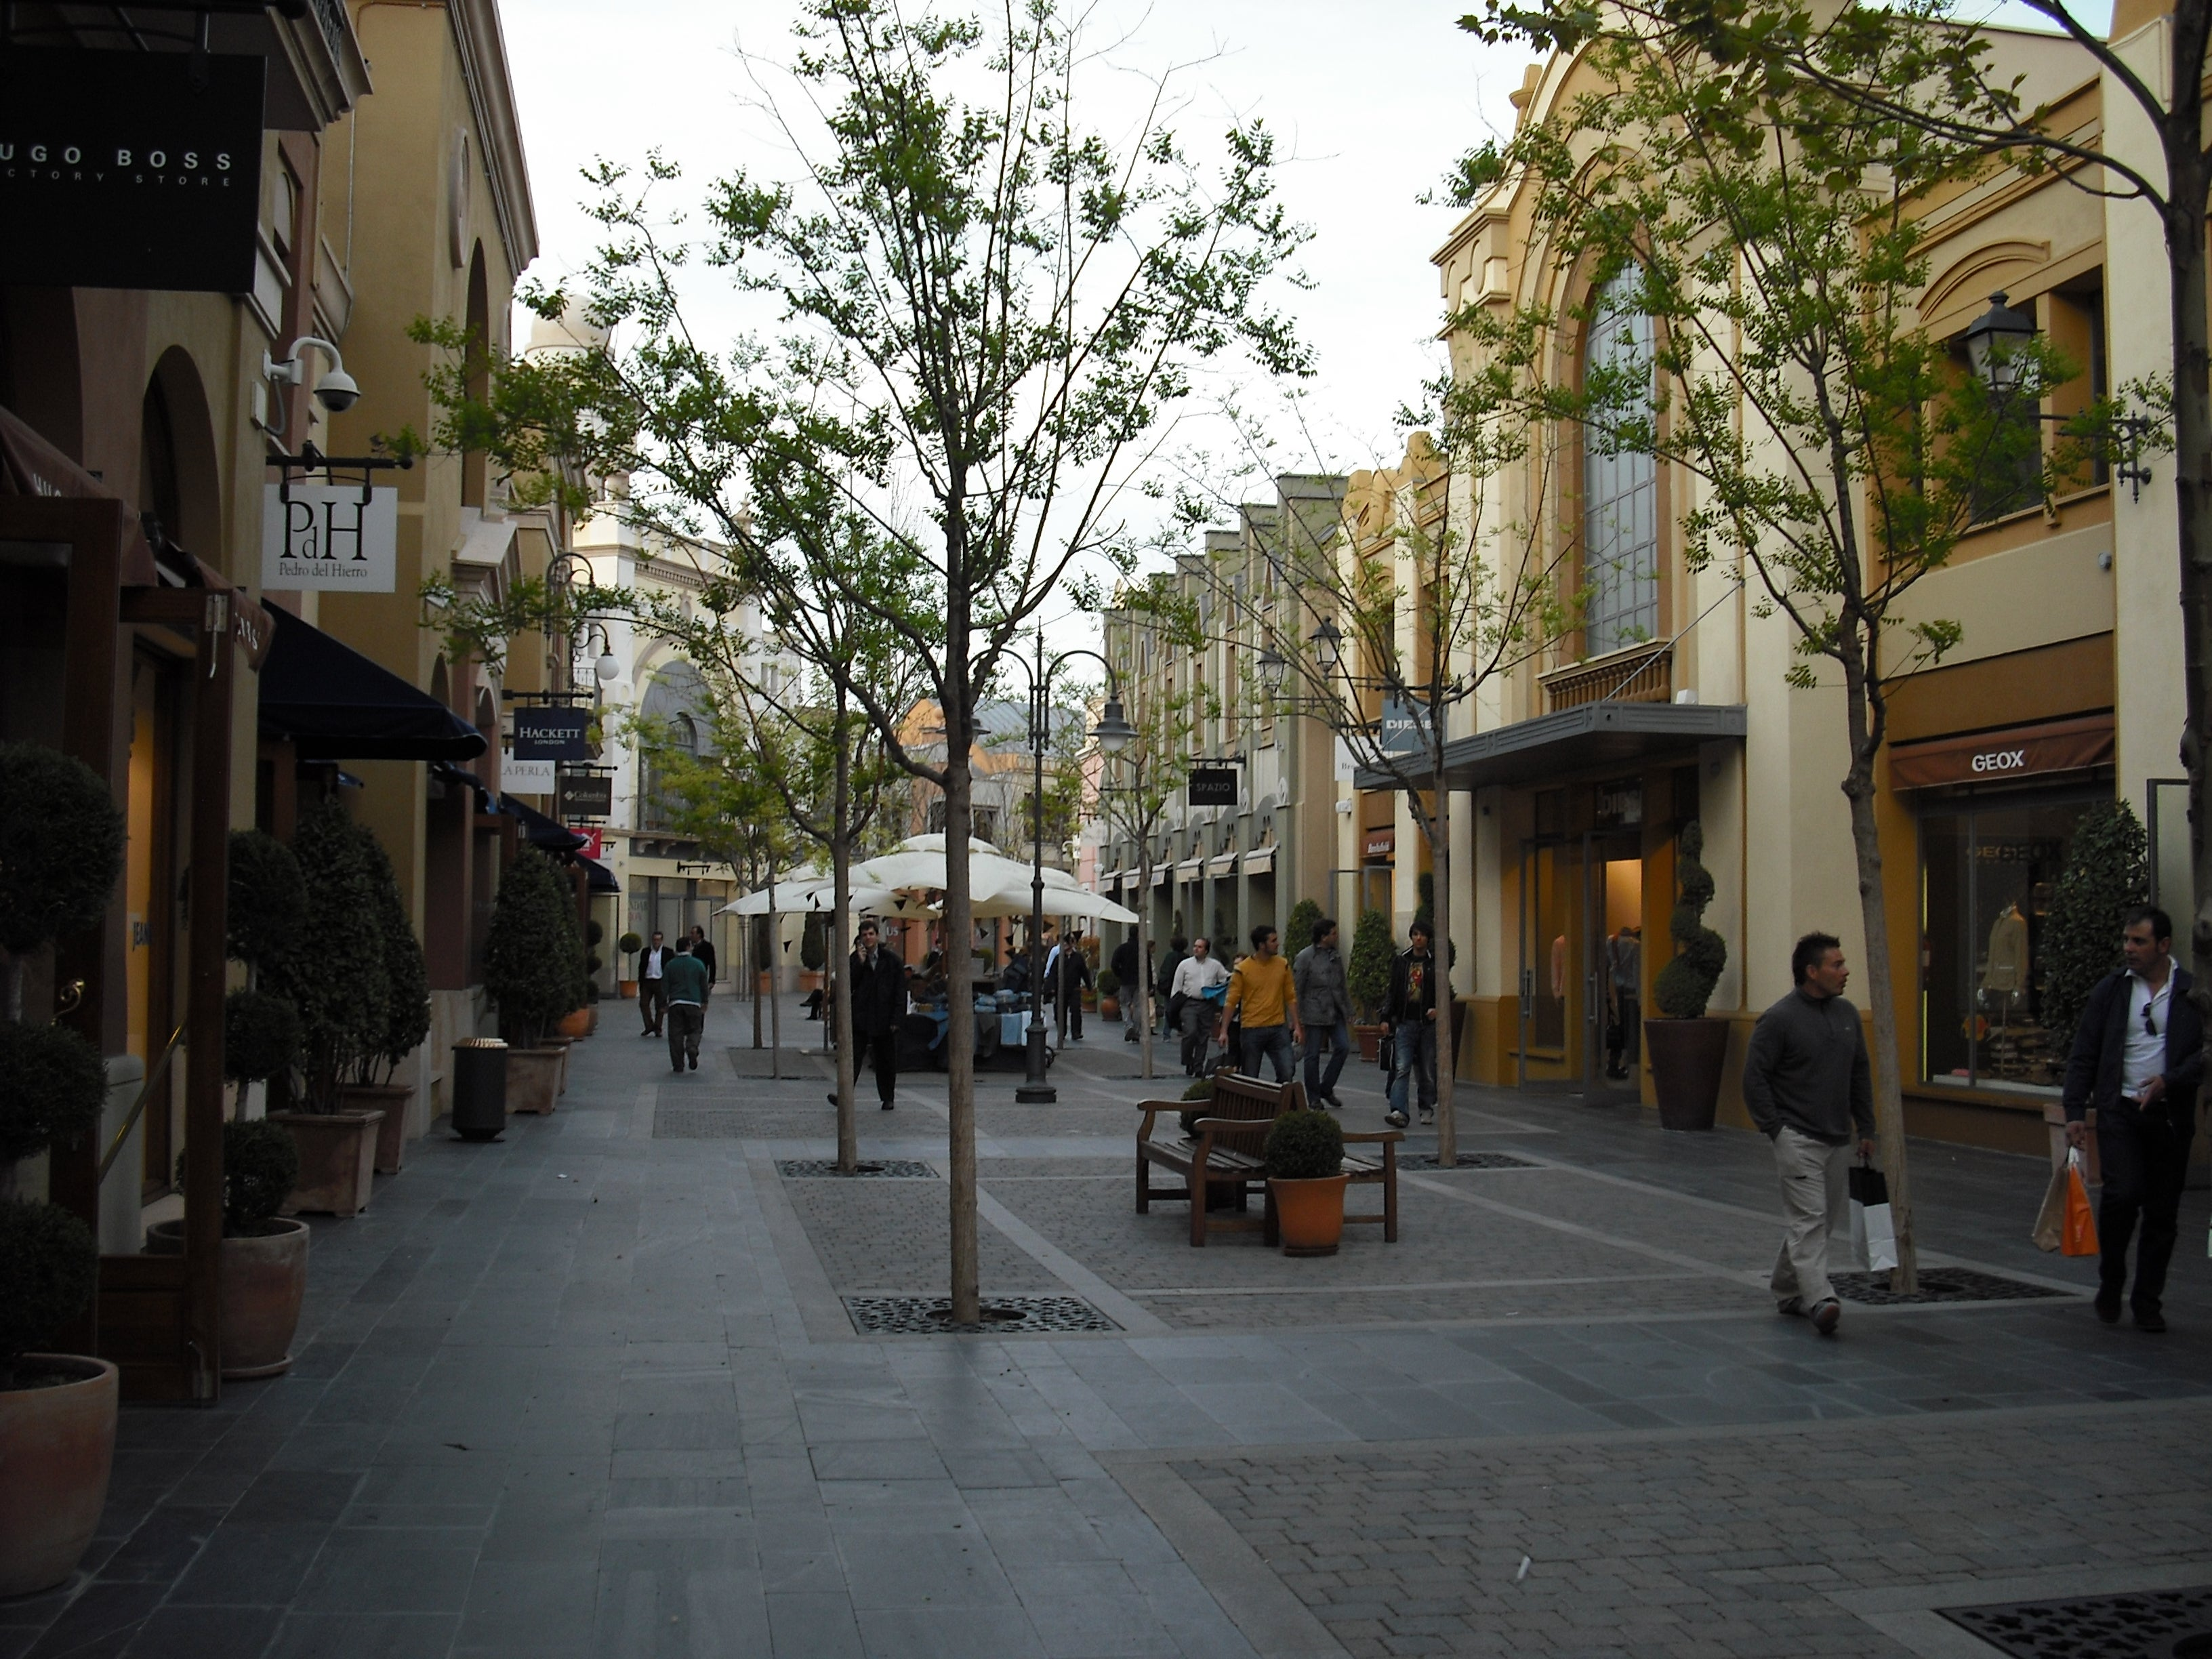 Barrio en Las Rozas Village outlet shopping